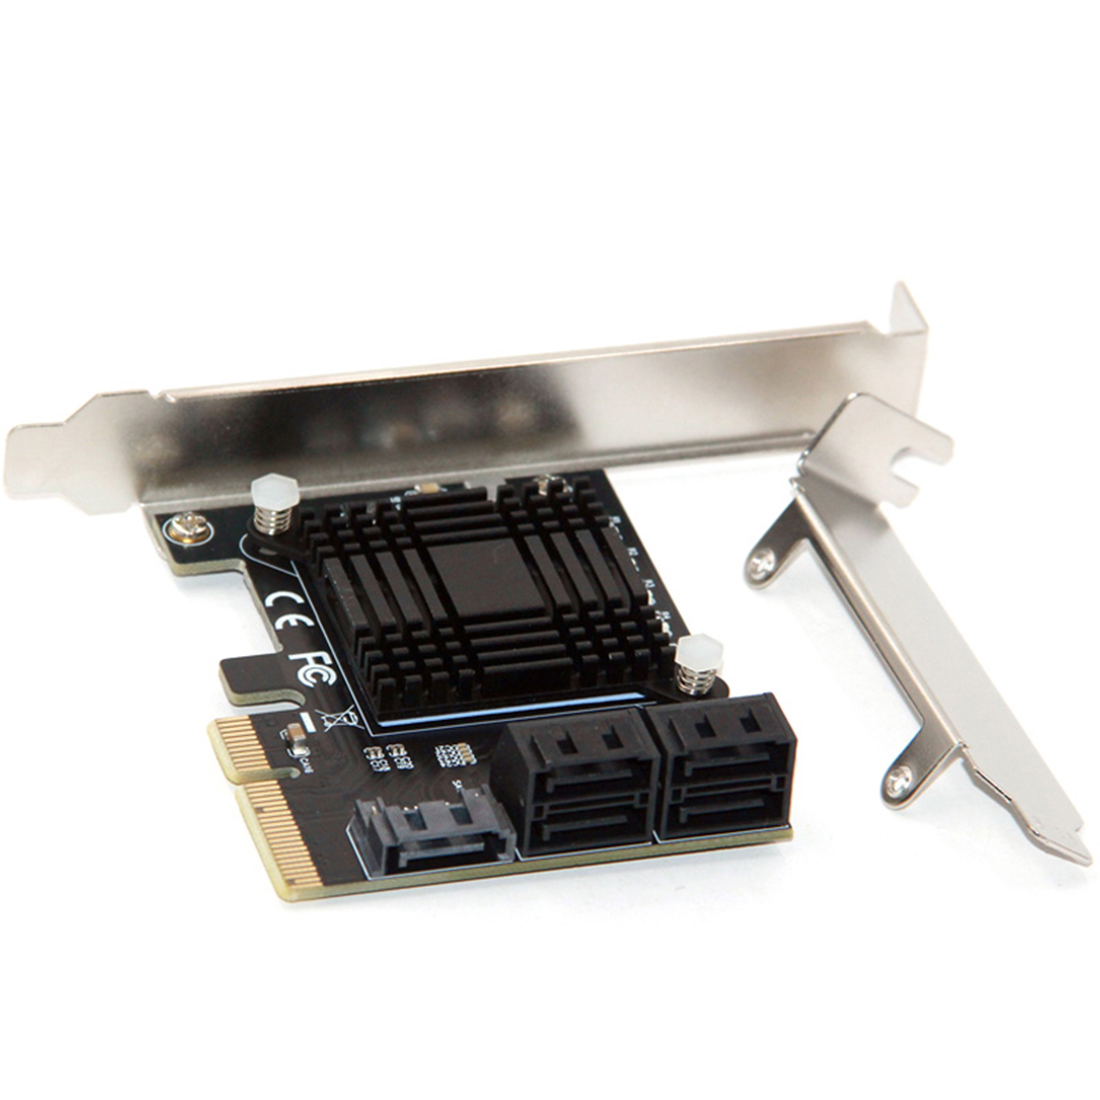 XT-XINTE PCI Express 3.0 X4 To 5 Port SATA III 6Gbps Expansion Controller Card Support Port Multiplier For HDD SSD